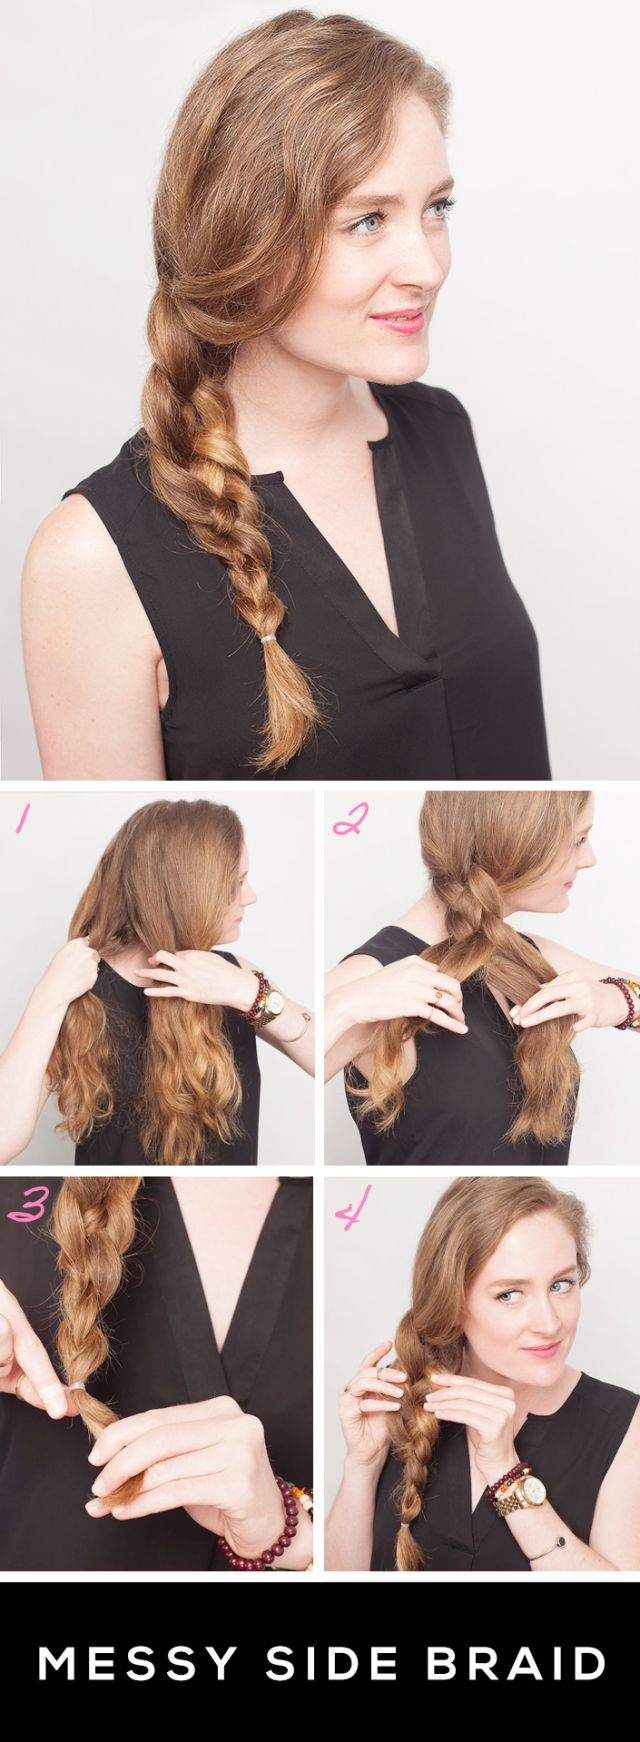 Master the perfectly messy side braid